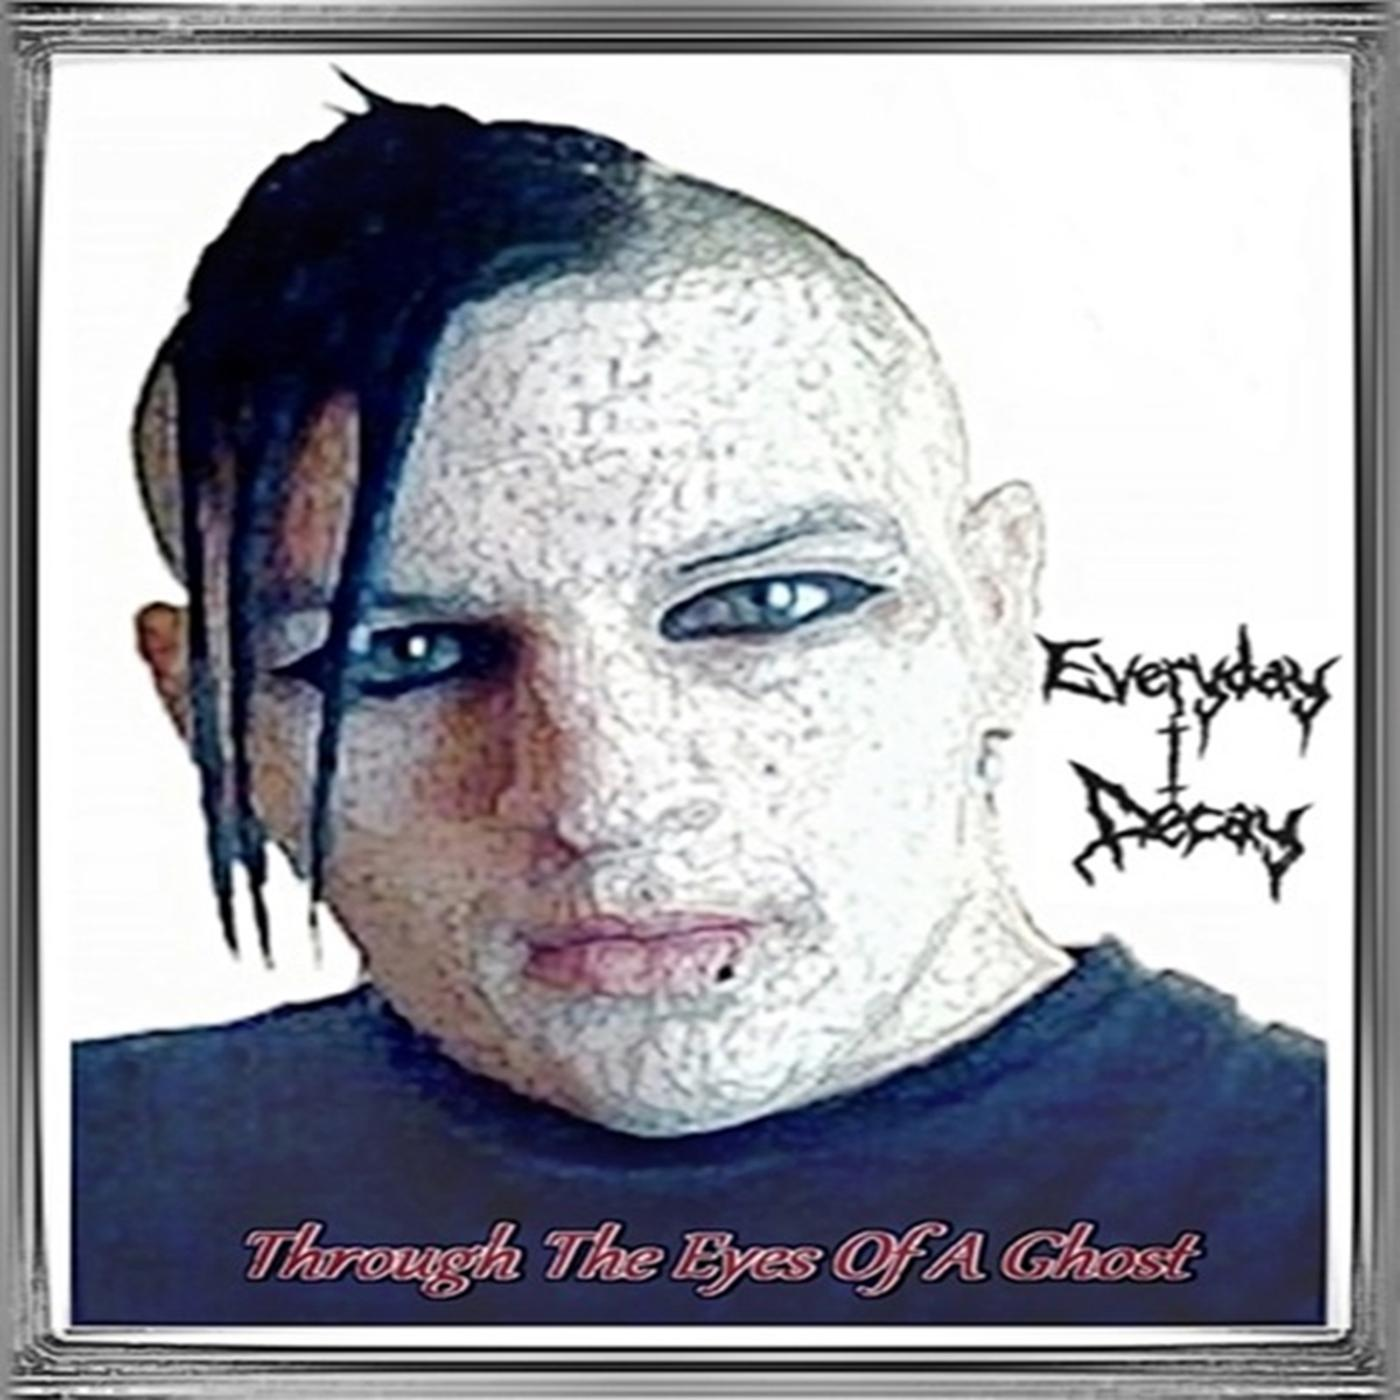 Listen Free to Everyday I Decay - Through the Eyes of a Ghost Radio | iHeartRadio